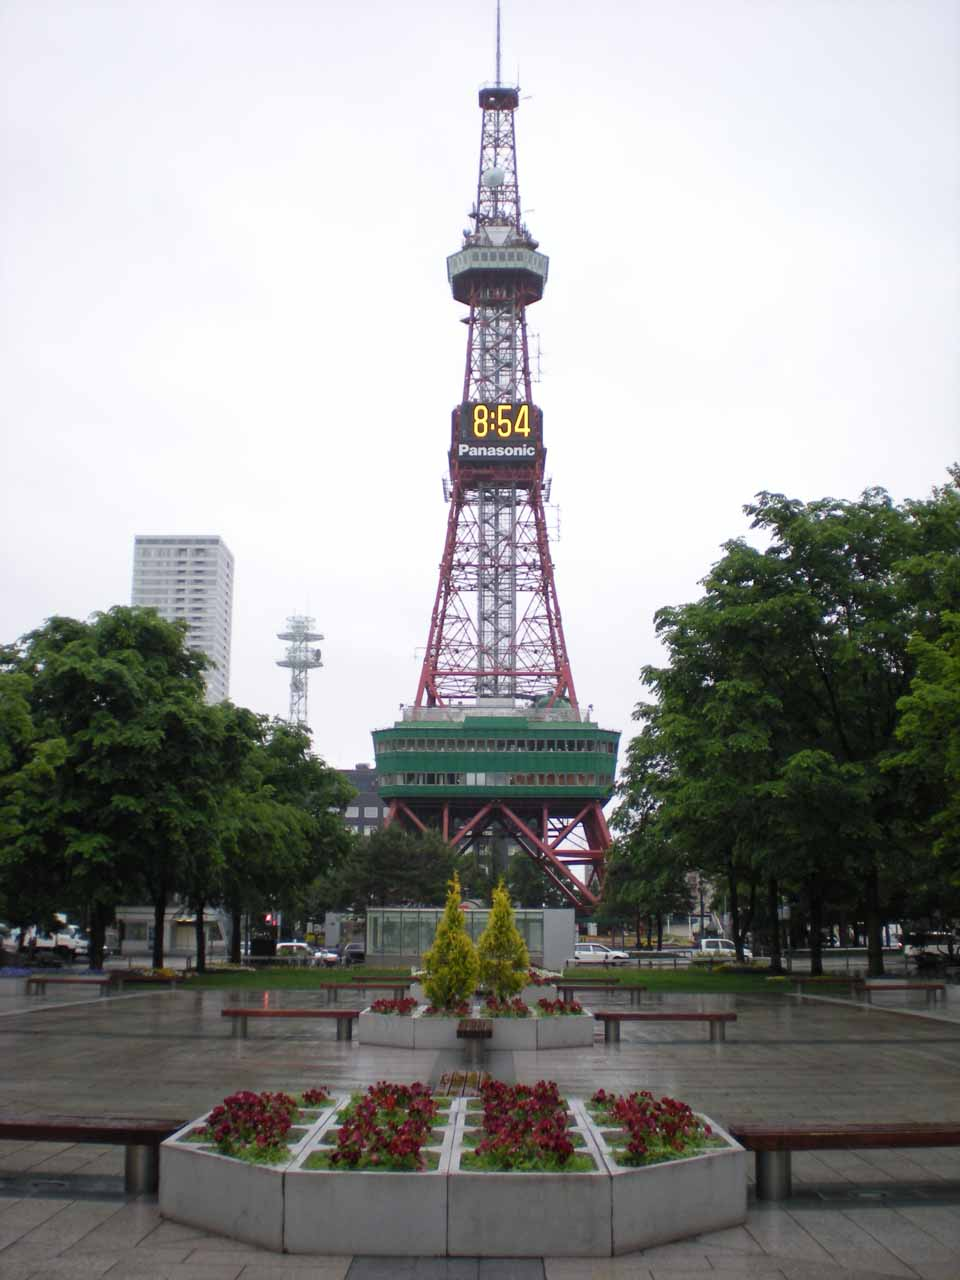 The Sapporo TV Tower